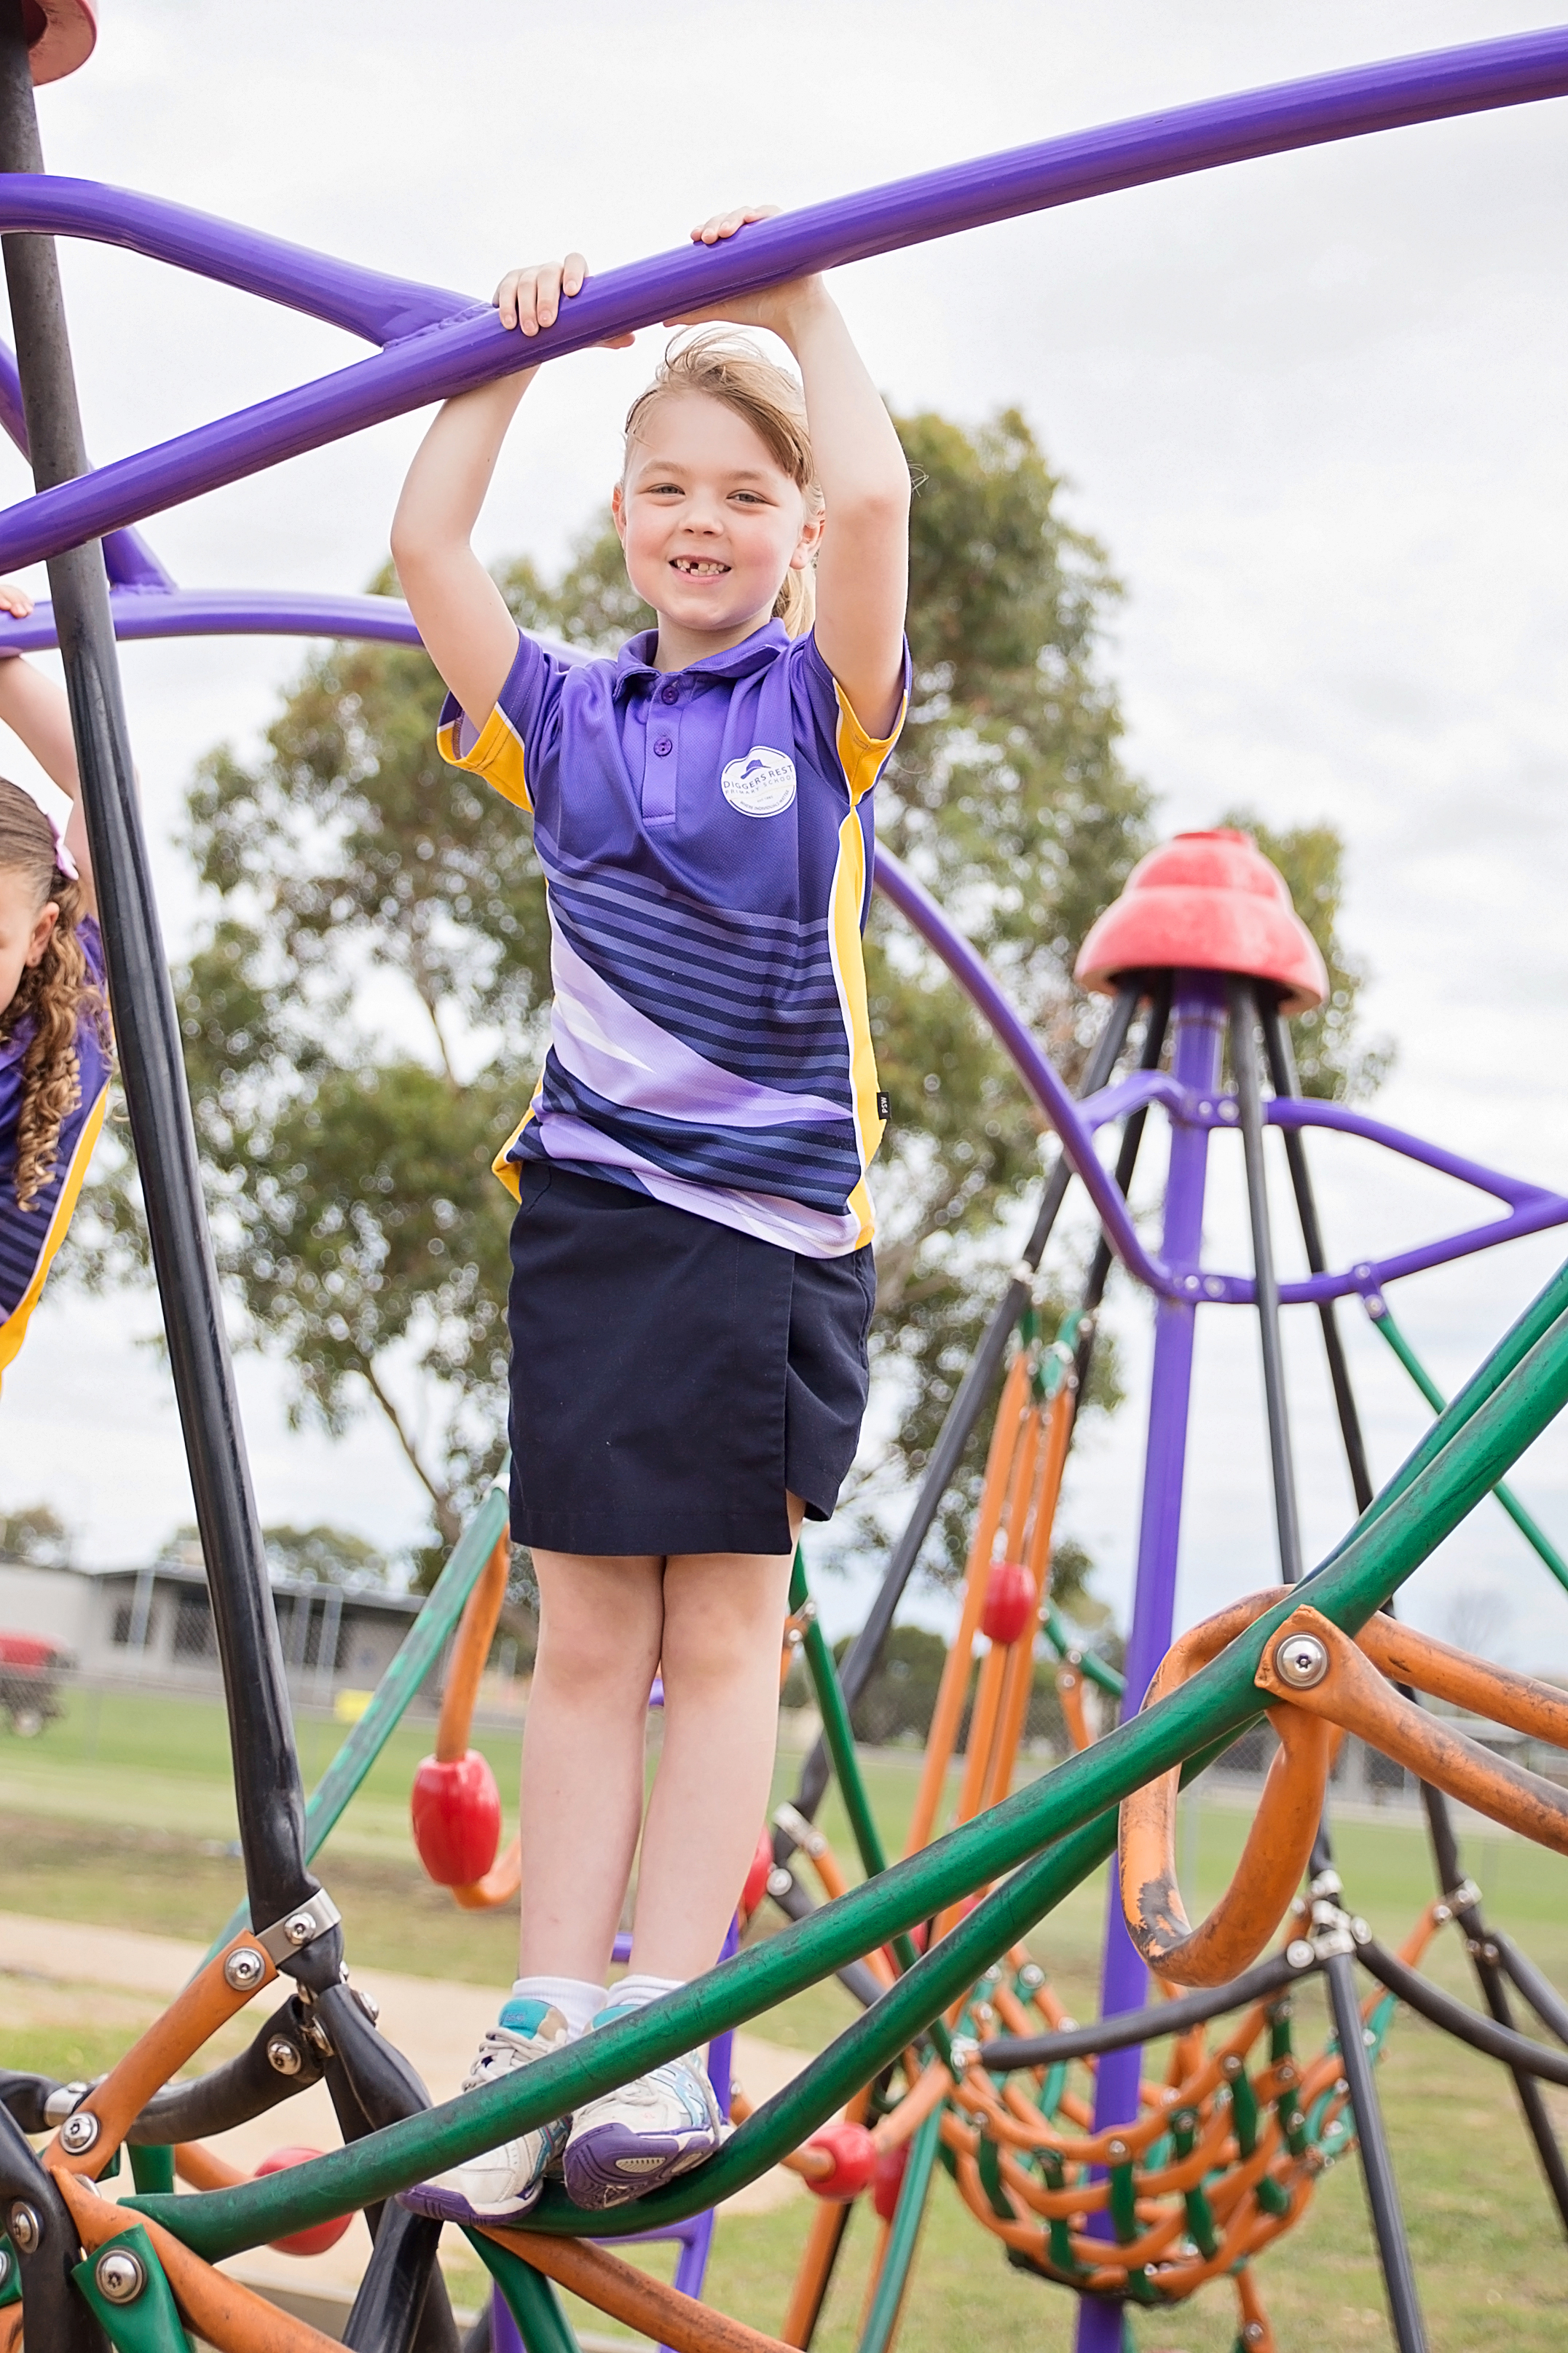 What do we stand for at Diggers Rest Primary School? - Our Purpose is to empower all students to excel through a culture of high expectations, purposeful relationships, challenge and support.